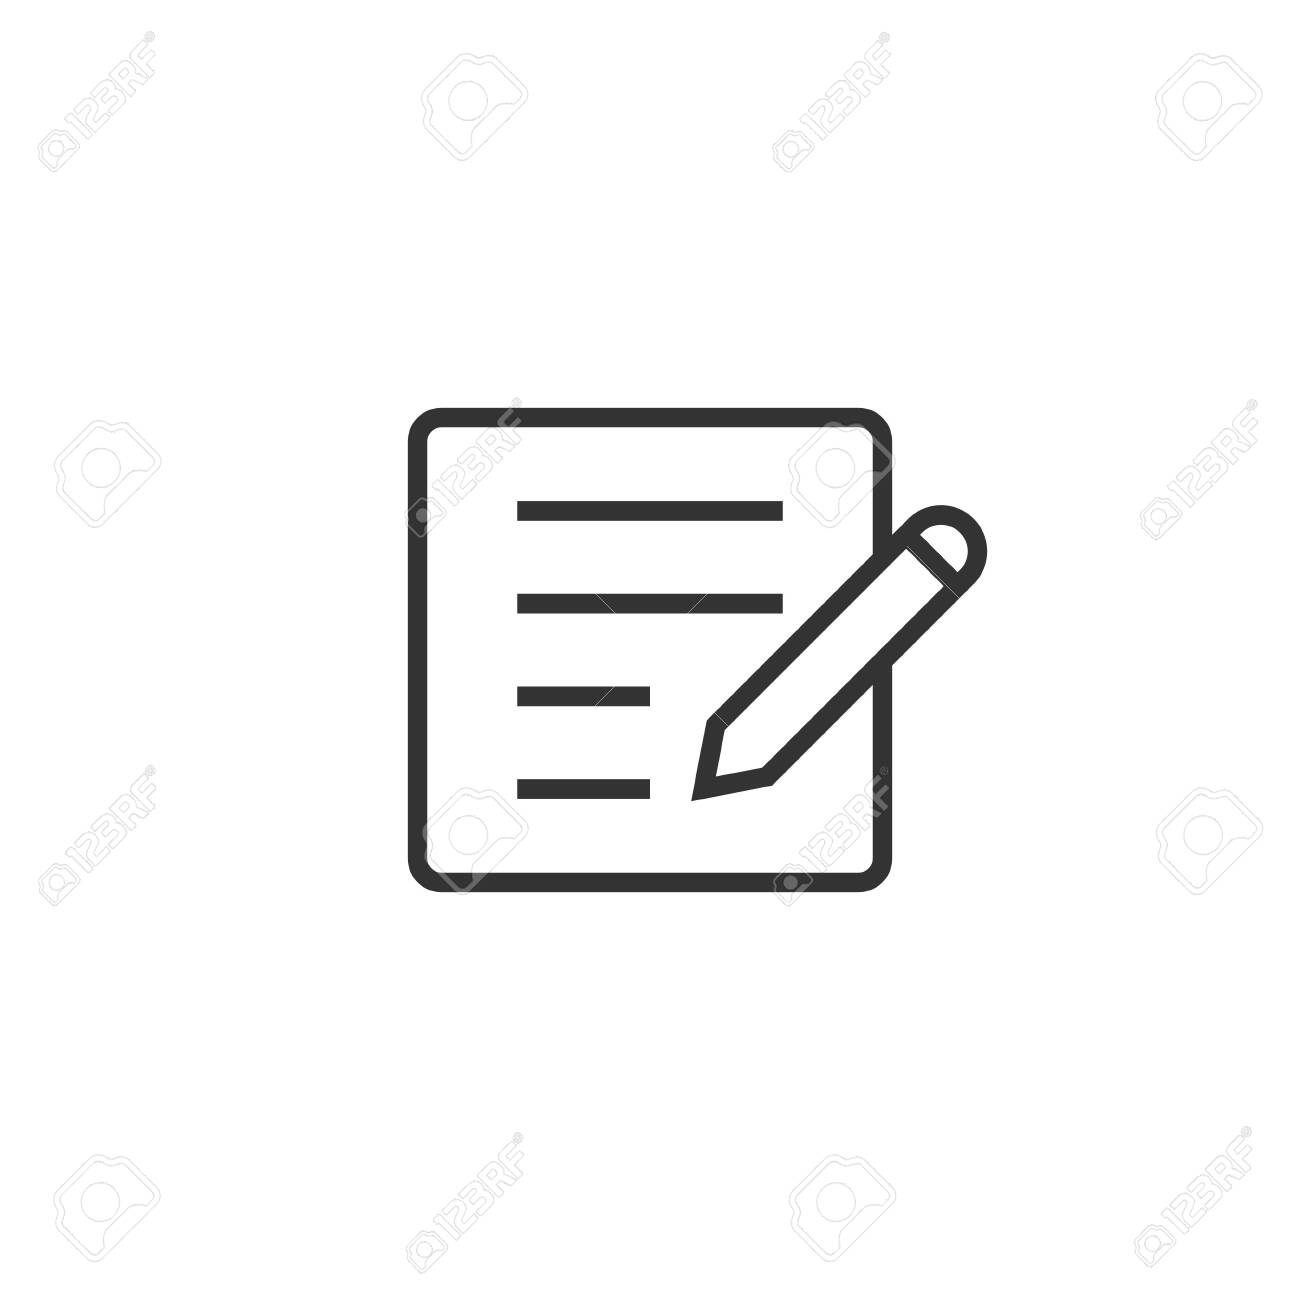 Blogging icon in flat style. Document with pen vector illustration on white isolated background. Content business concept. - 136983252